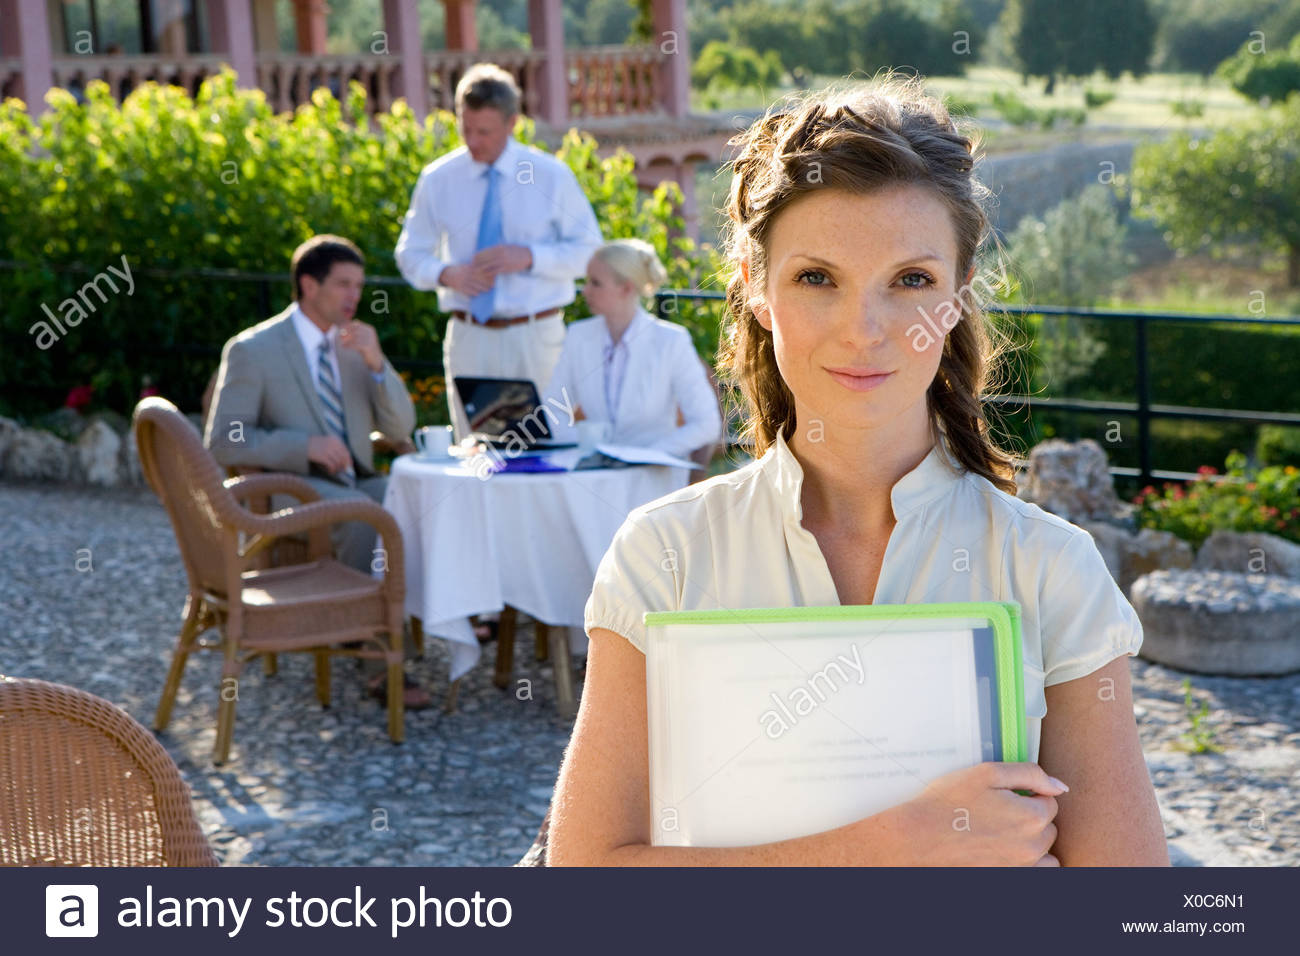 Confident businesswoman holding paperwork at café with coworkers in background - Stock Image